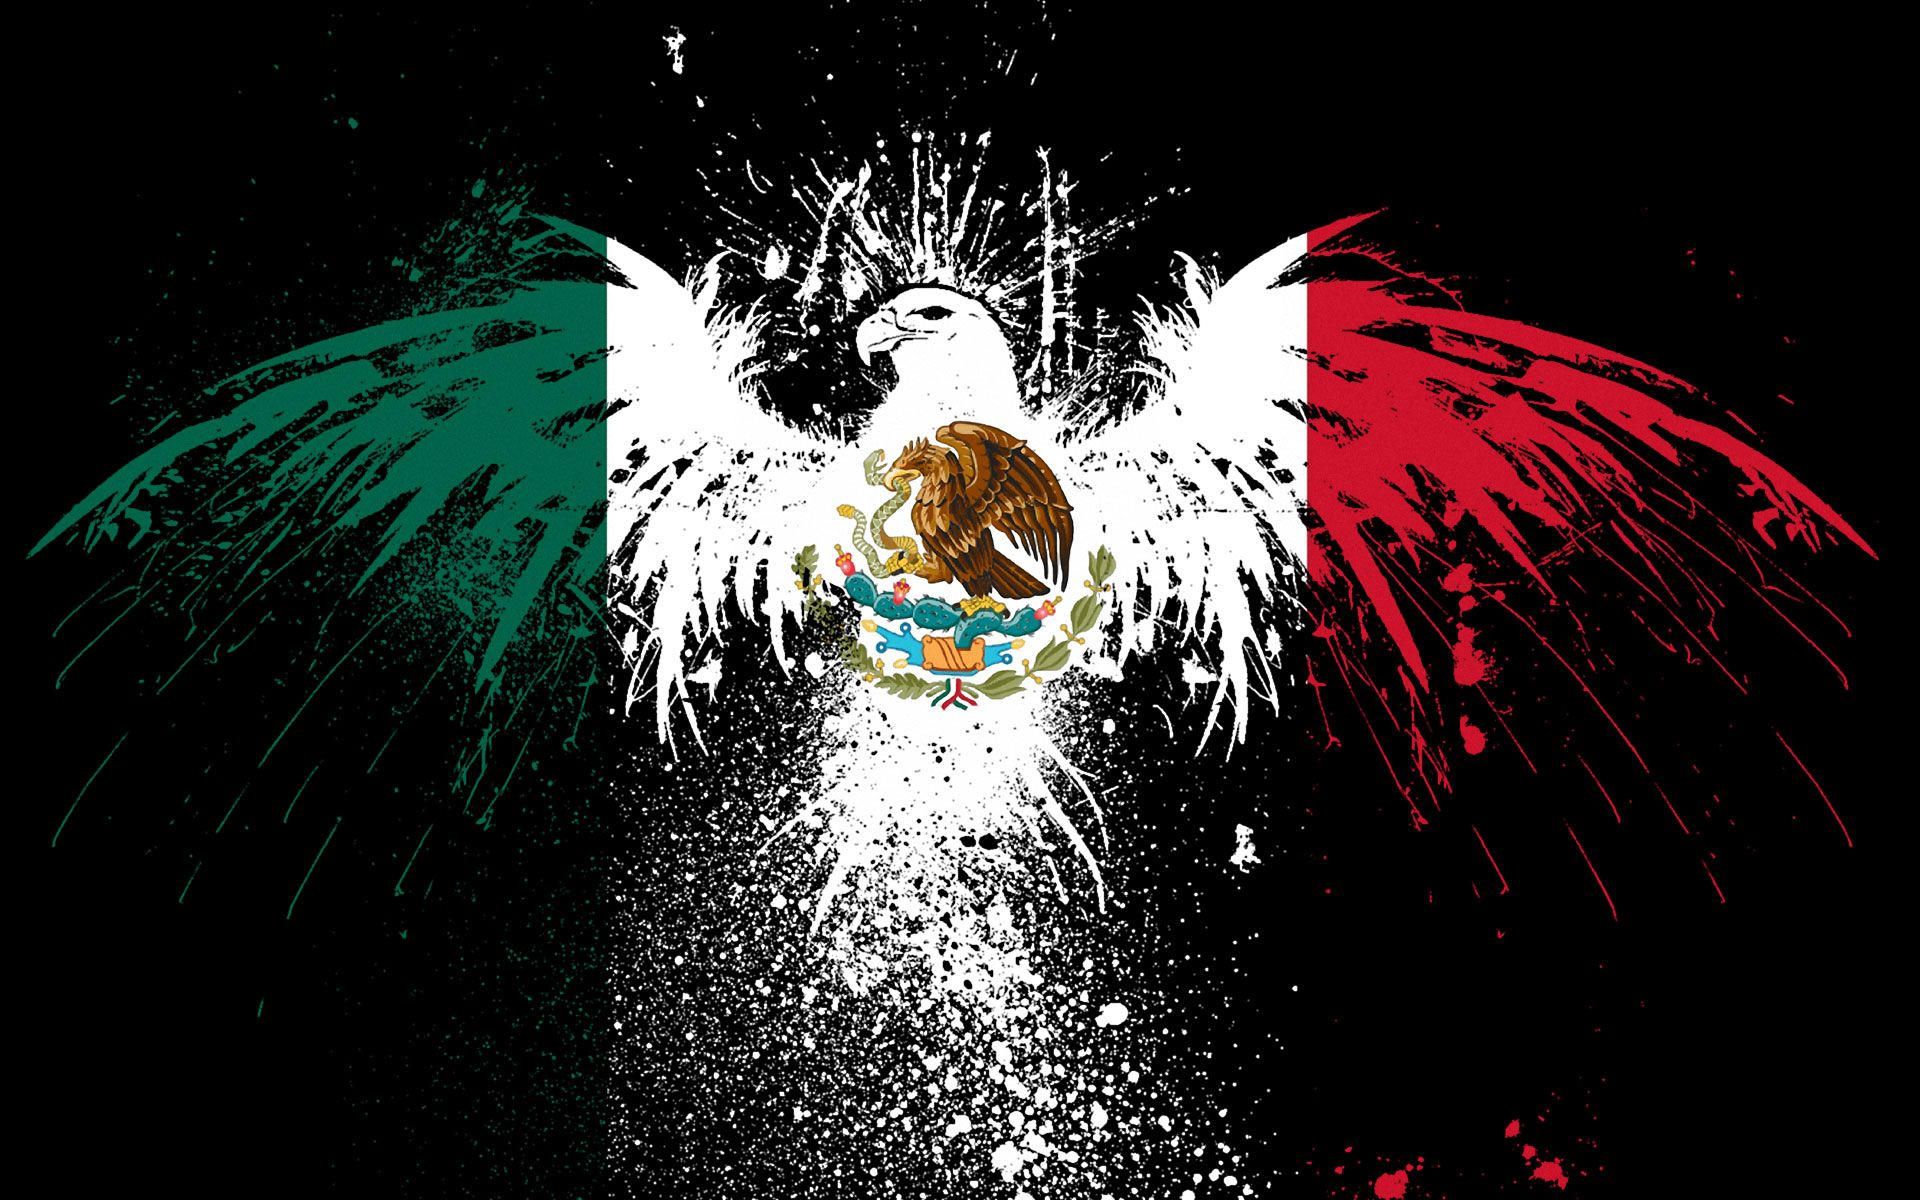 mexicanflaghighresolutionwallpaperdownloadmexican